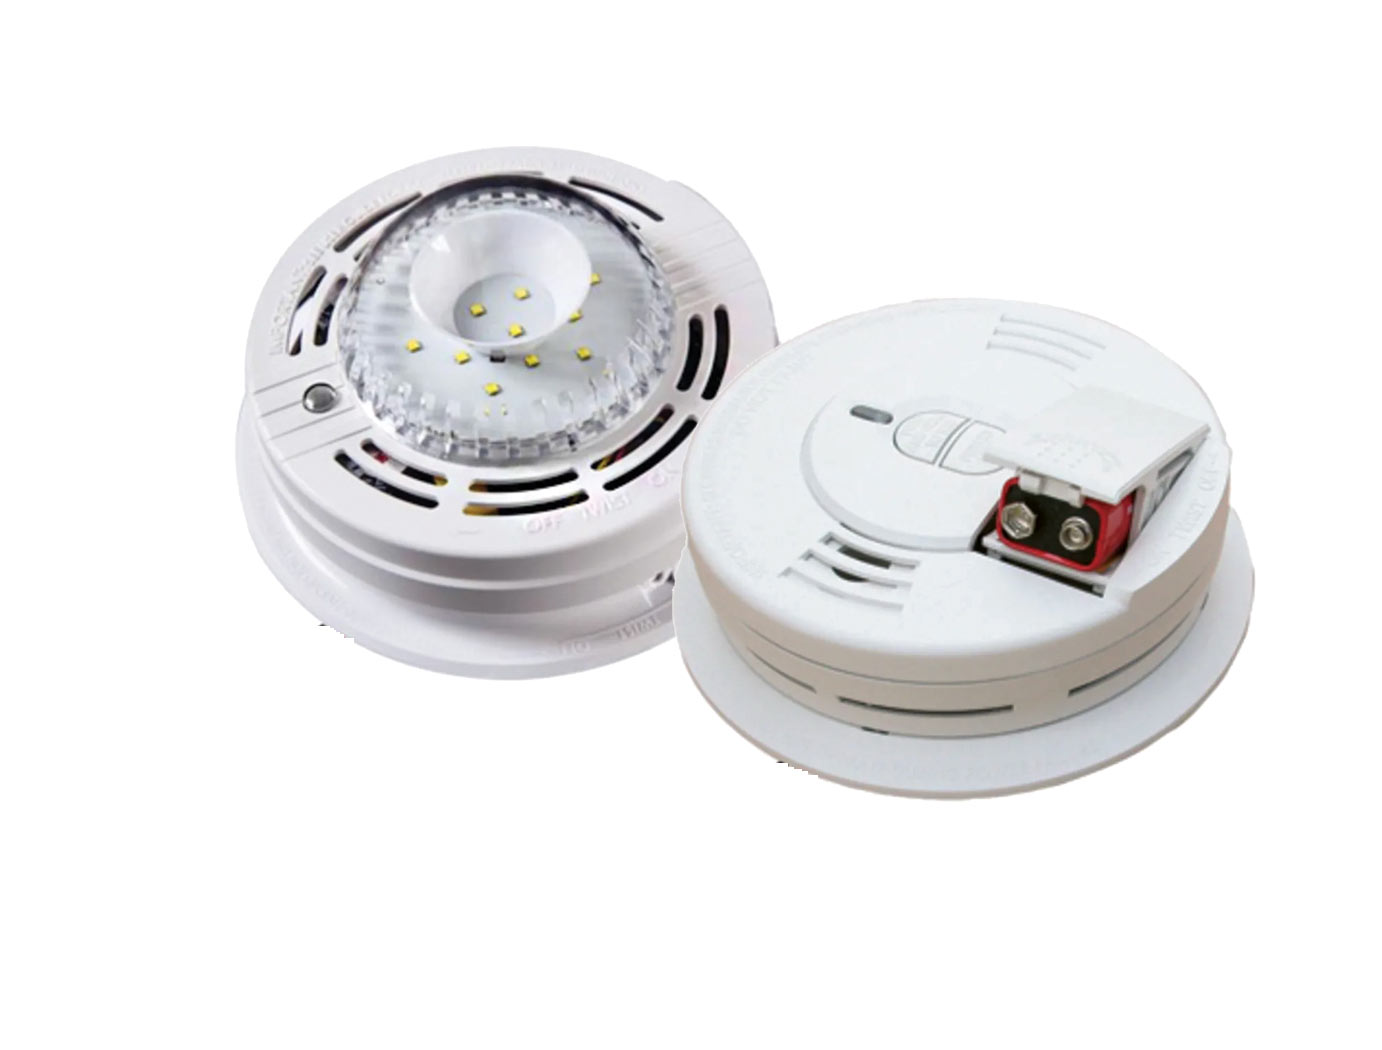 Kidde Smoke Alarm With Strobe Light Carbon Monoxide And